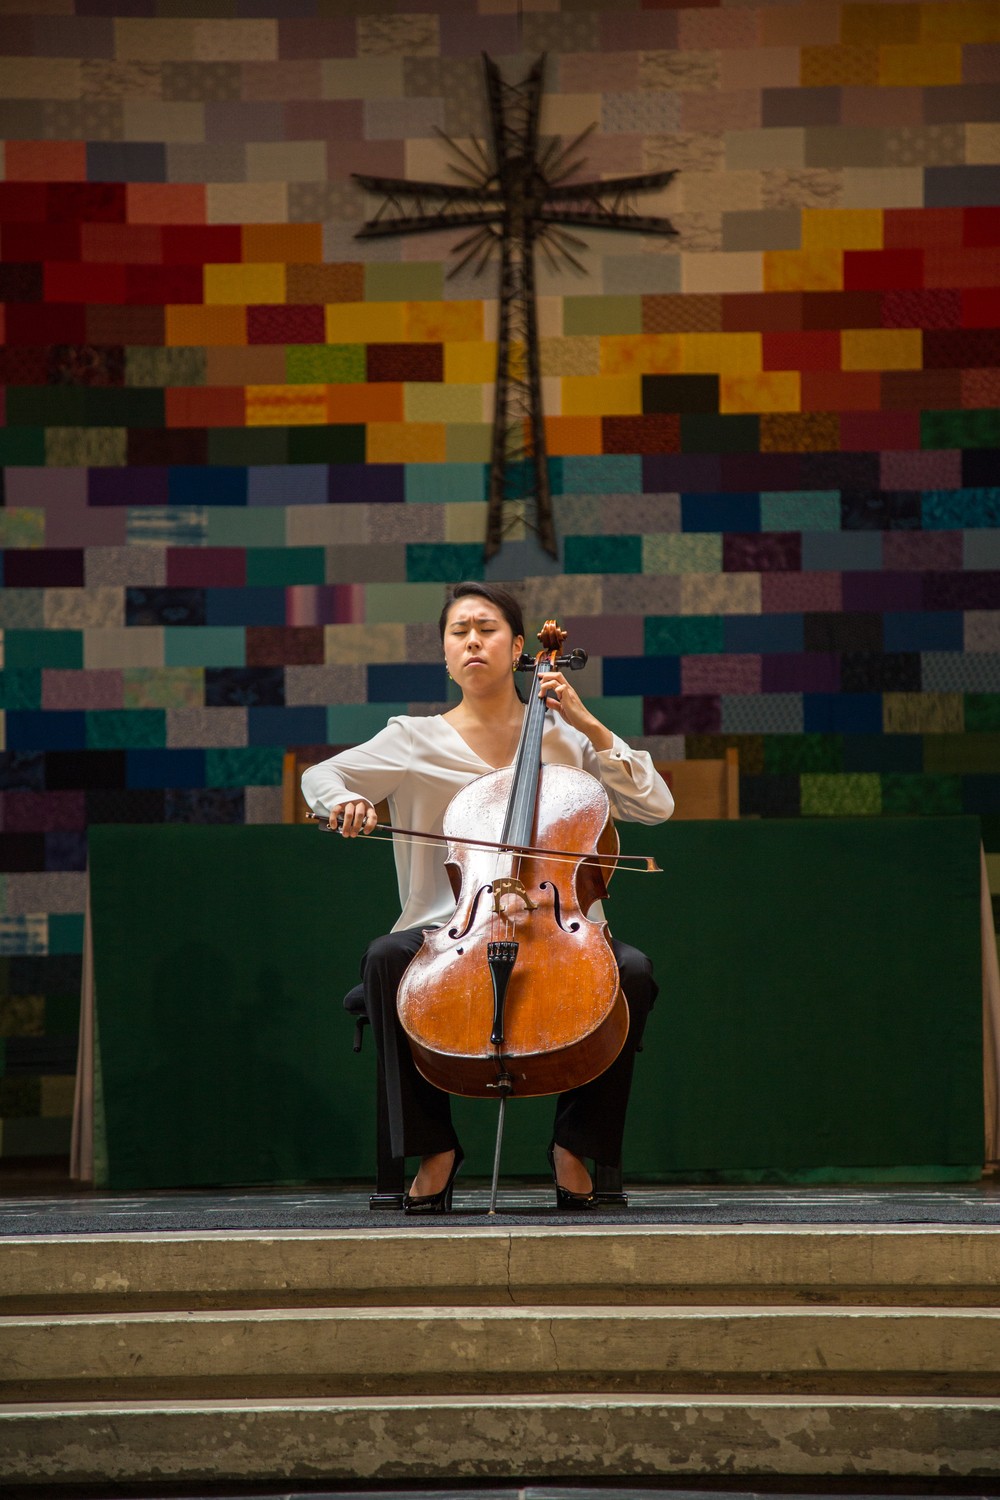 Essay on the craft of cello playing